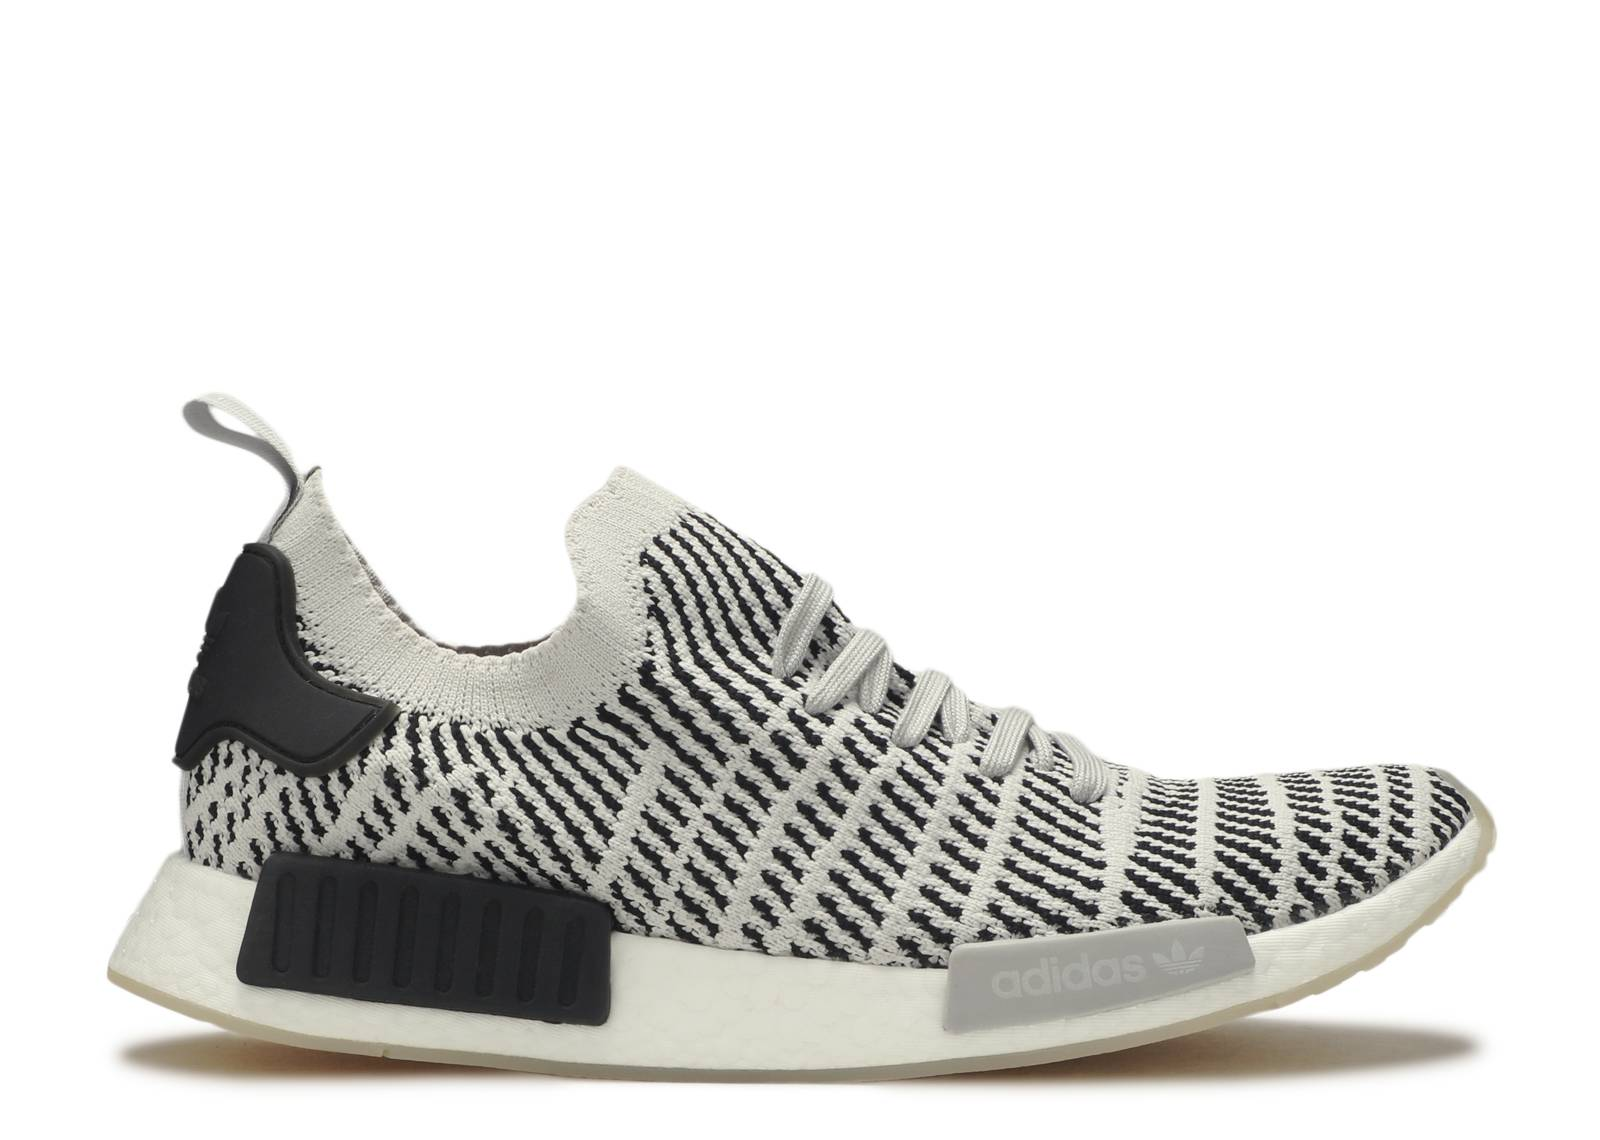 217a4a92dd183 Adidas NMD - adidas Originals Men s   Women s Shoes